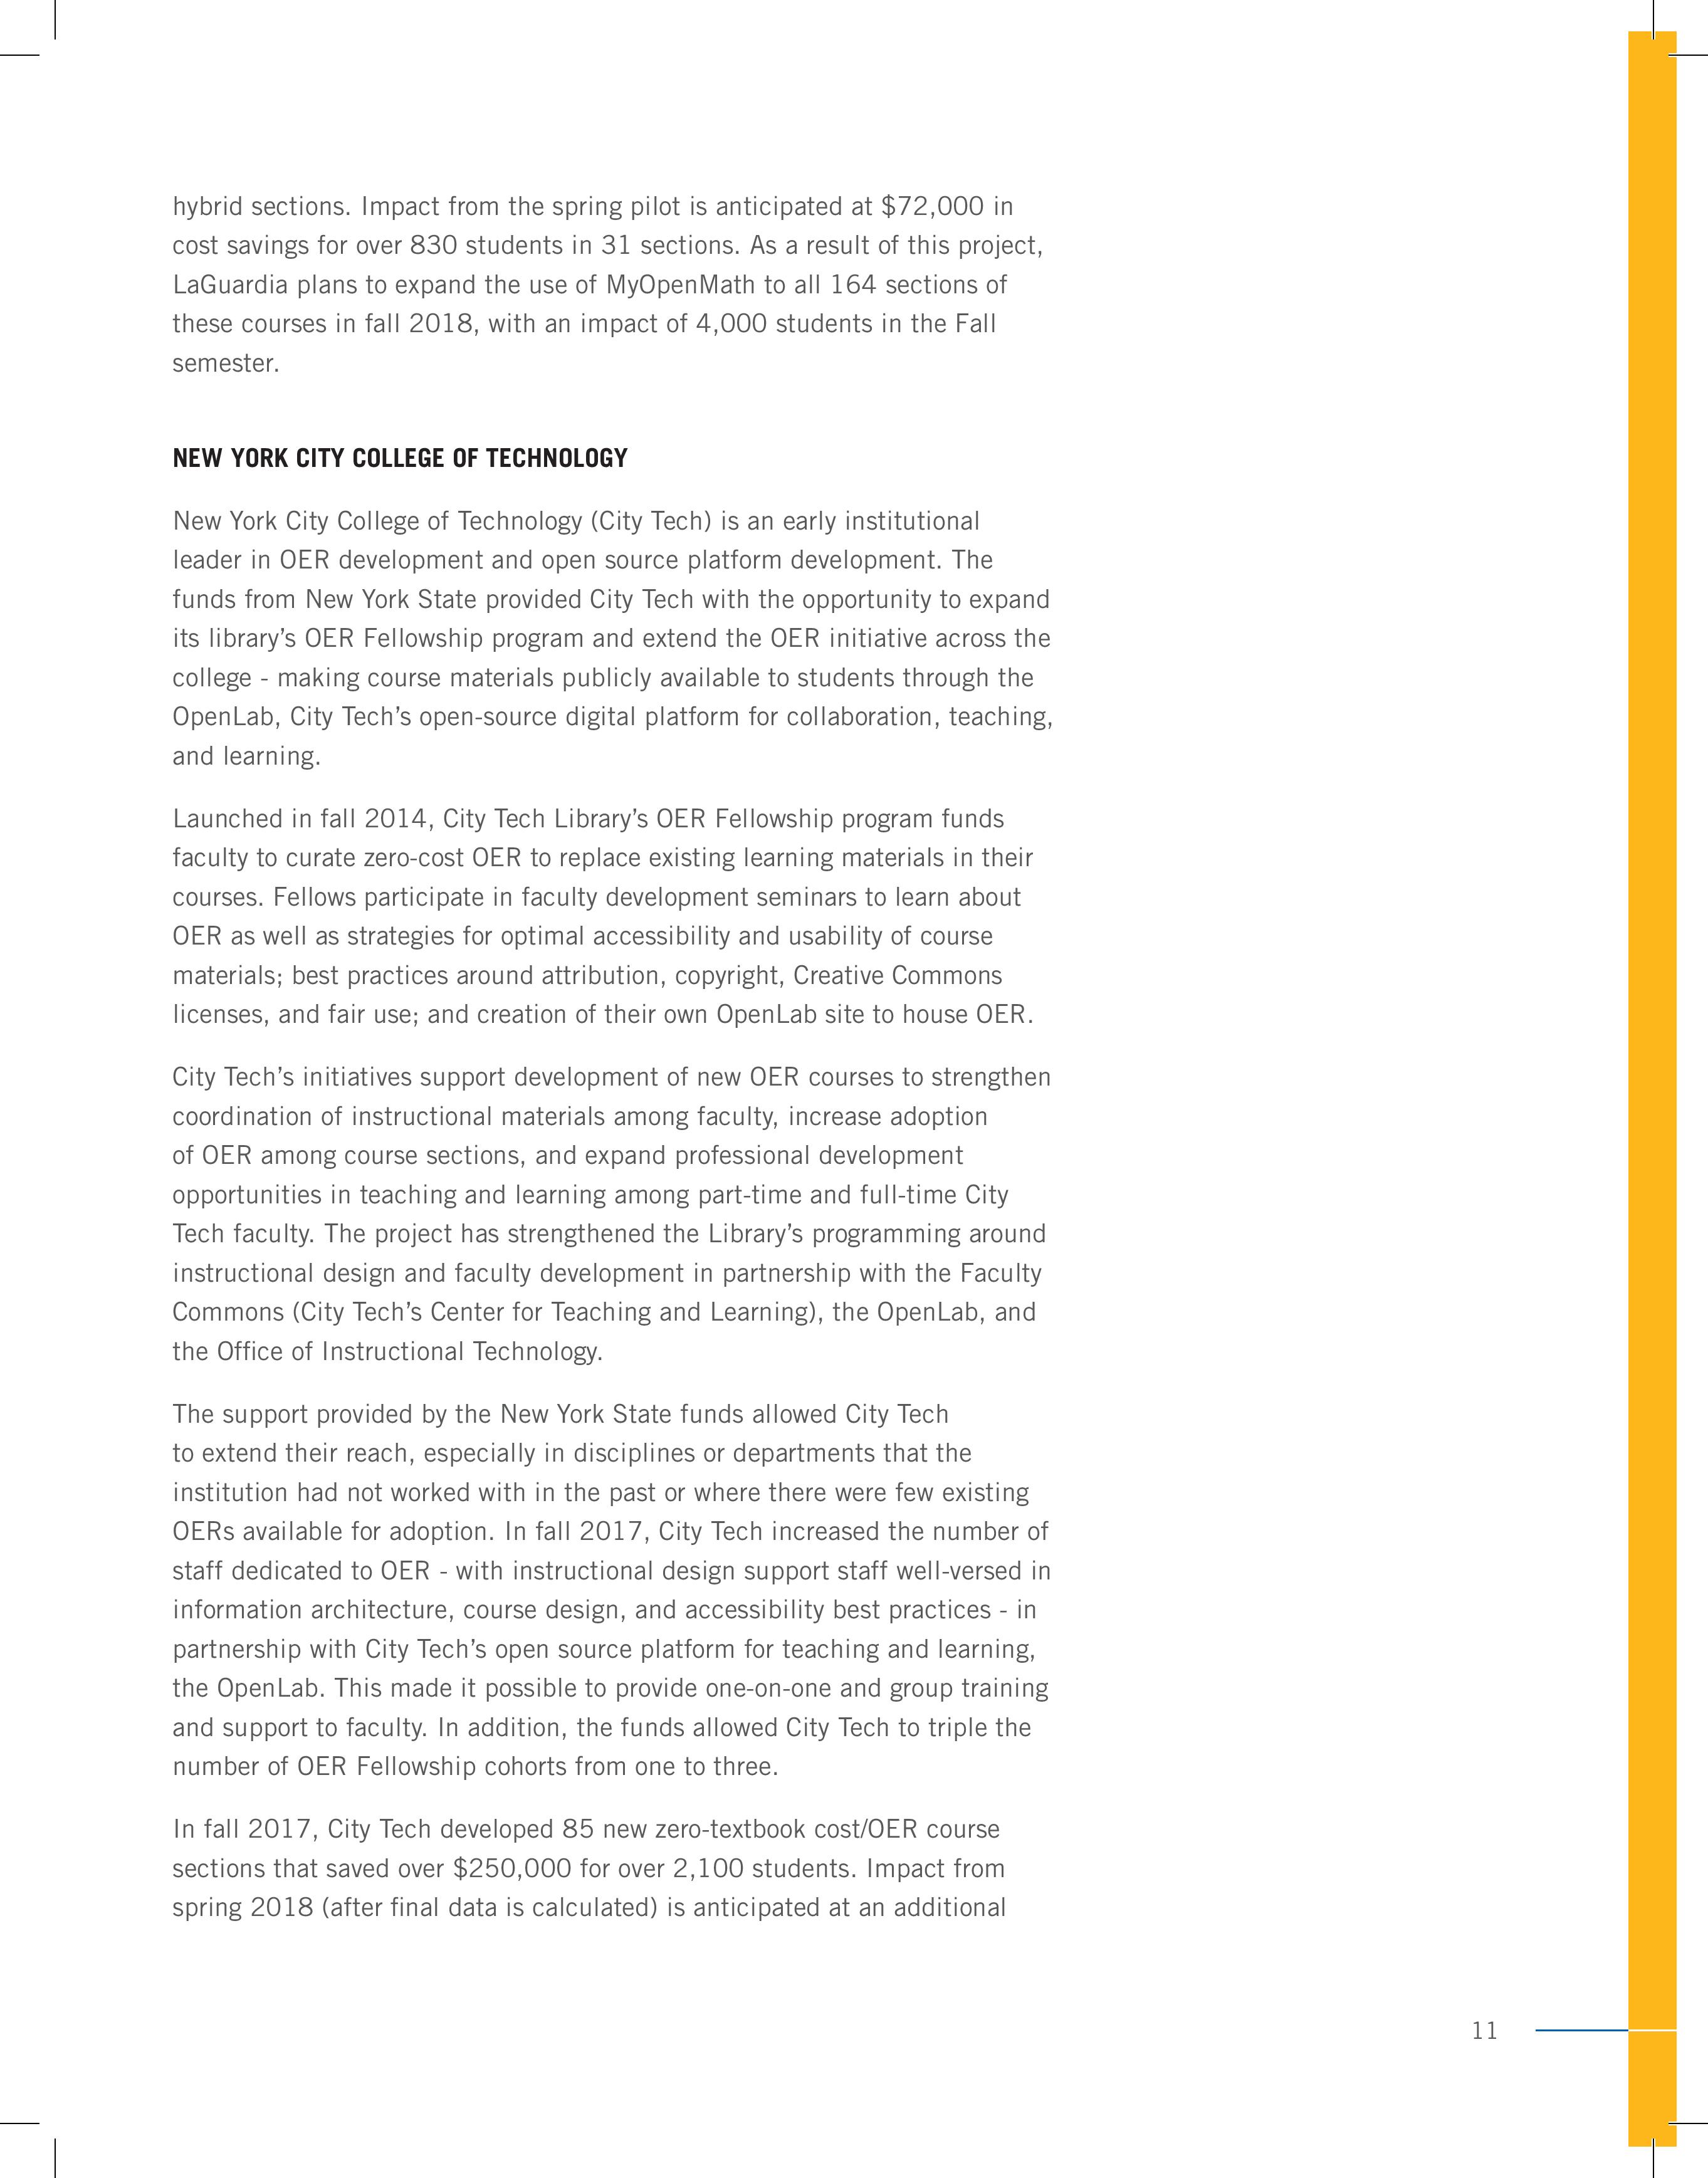 CUNY Report page 11